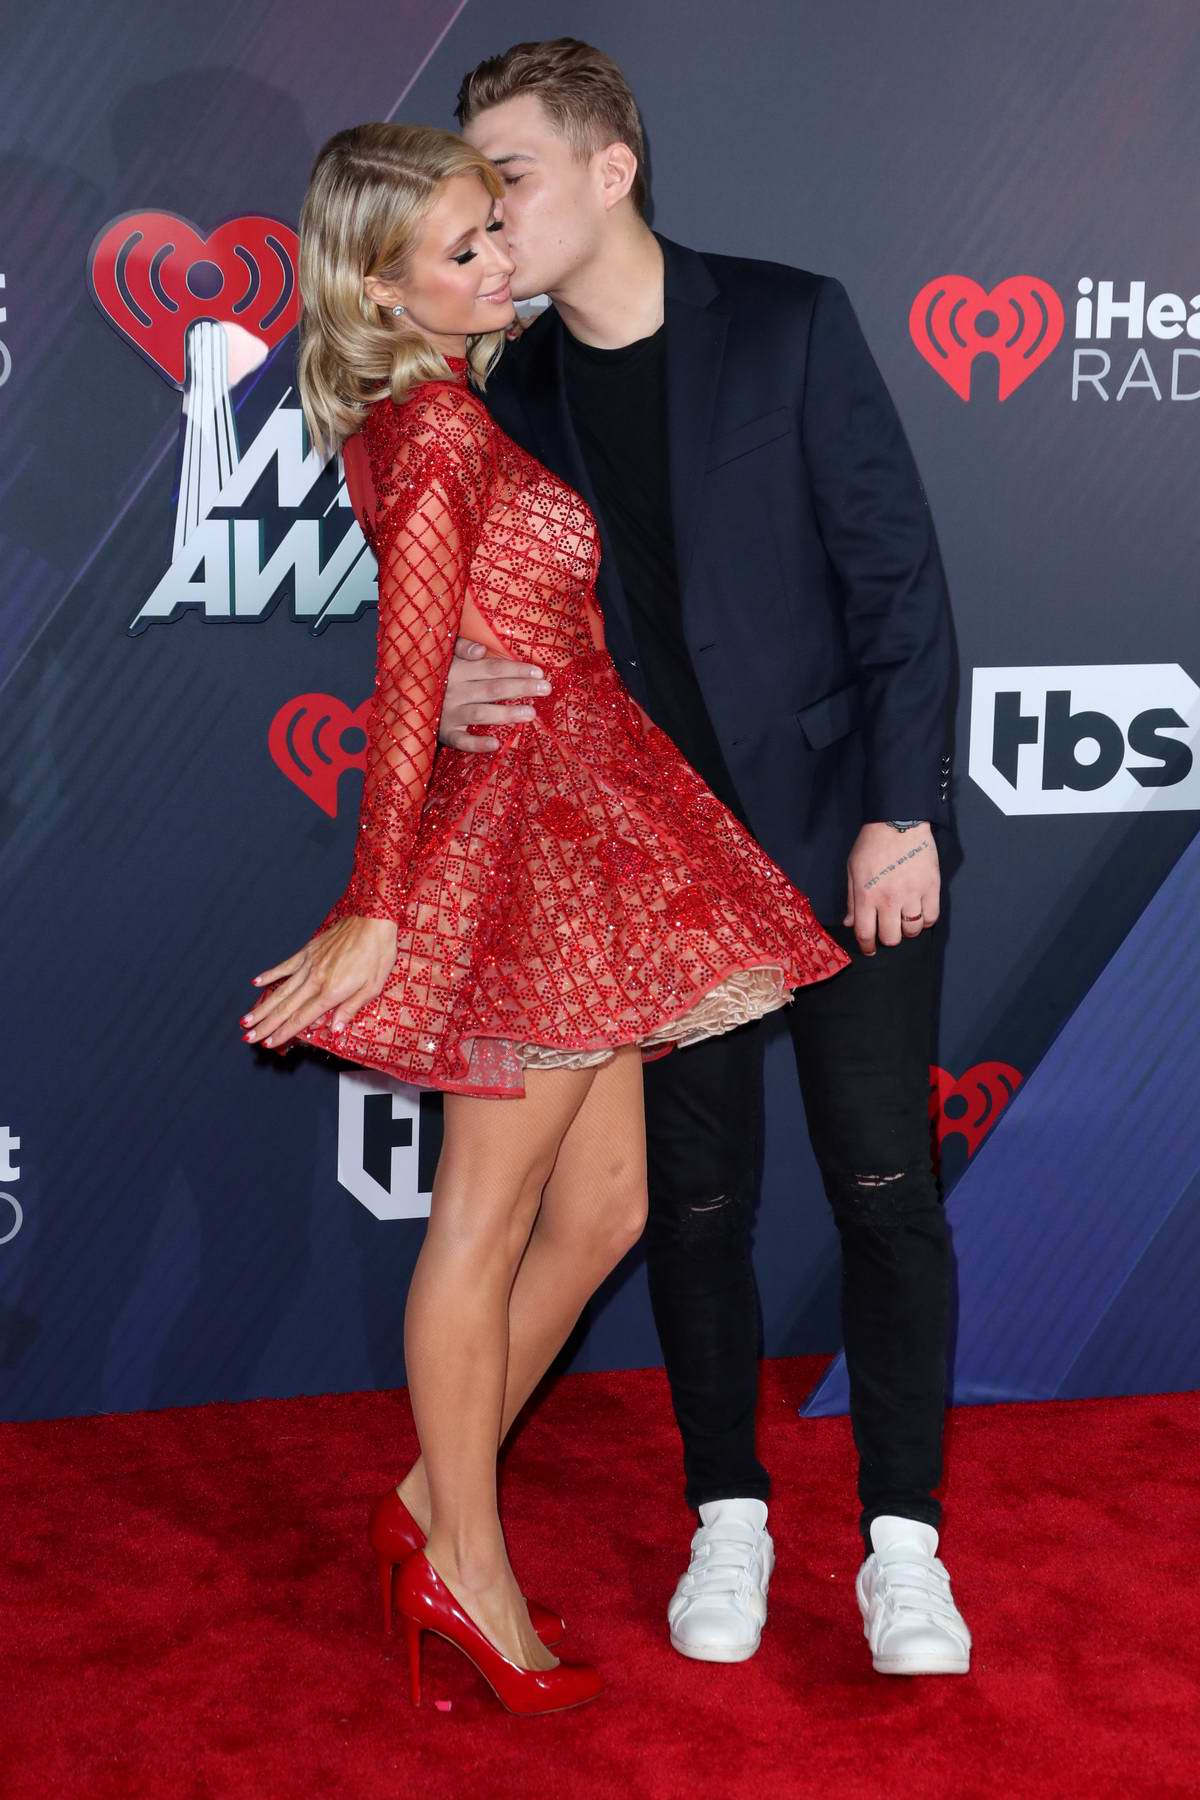 Paris Hilton attends the 2018 iHeartRadio Music Awards at The Forum in Inglewood, California